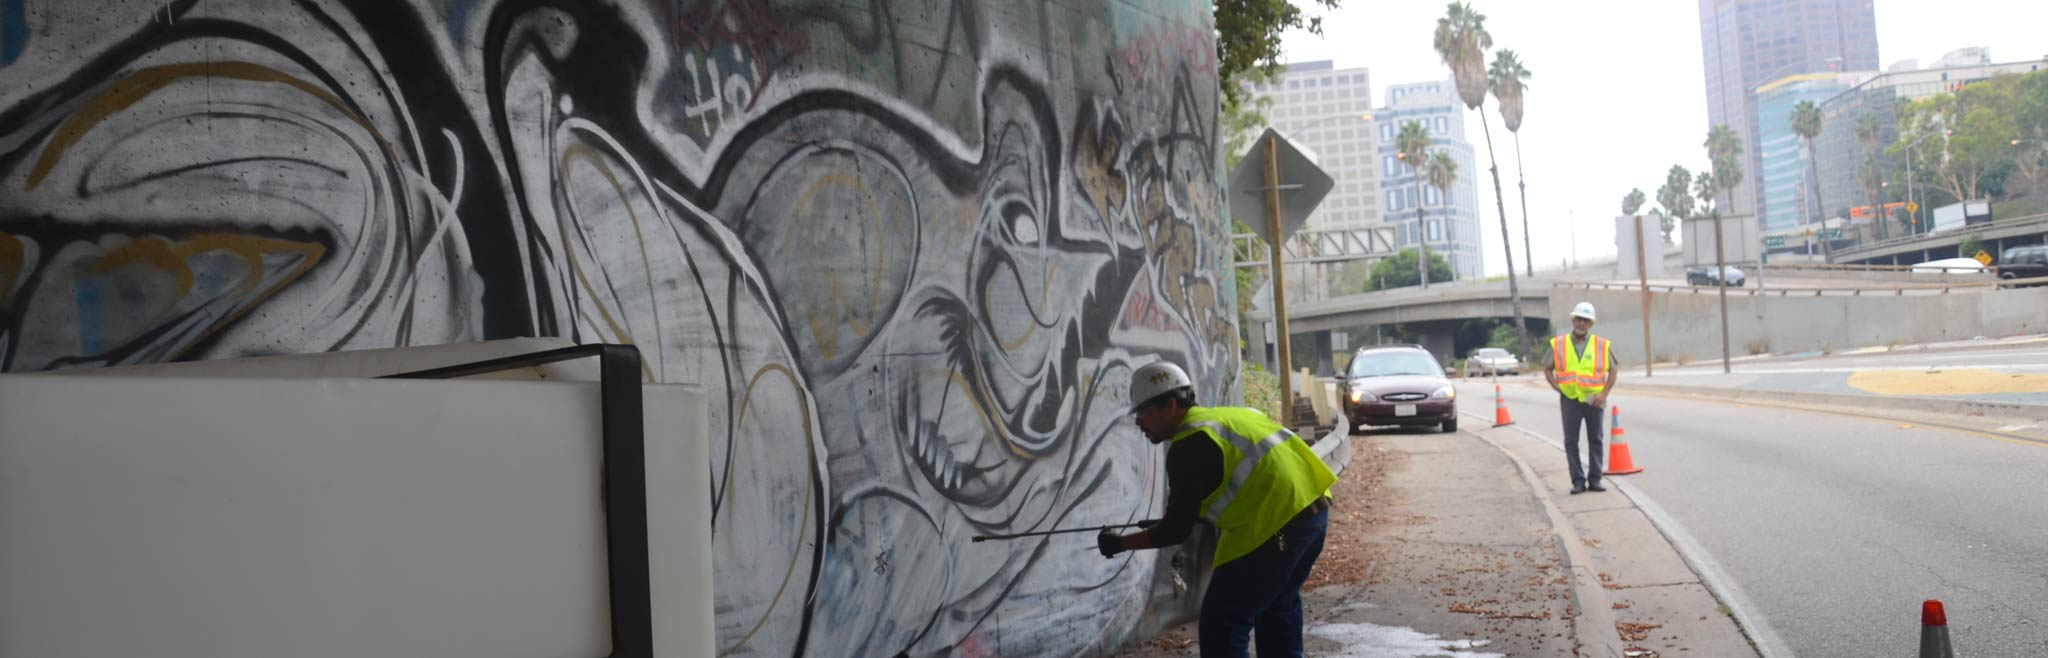 Mural Rescue Program    click for more details >